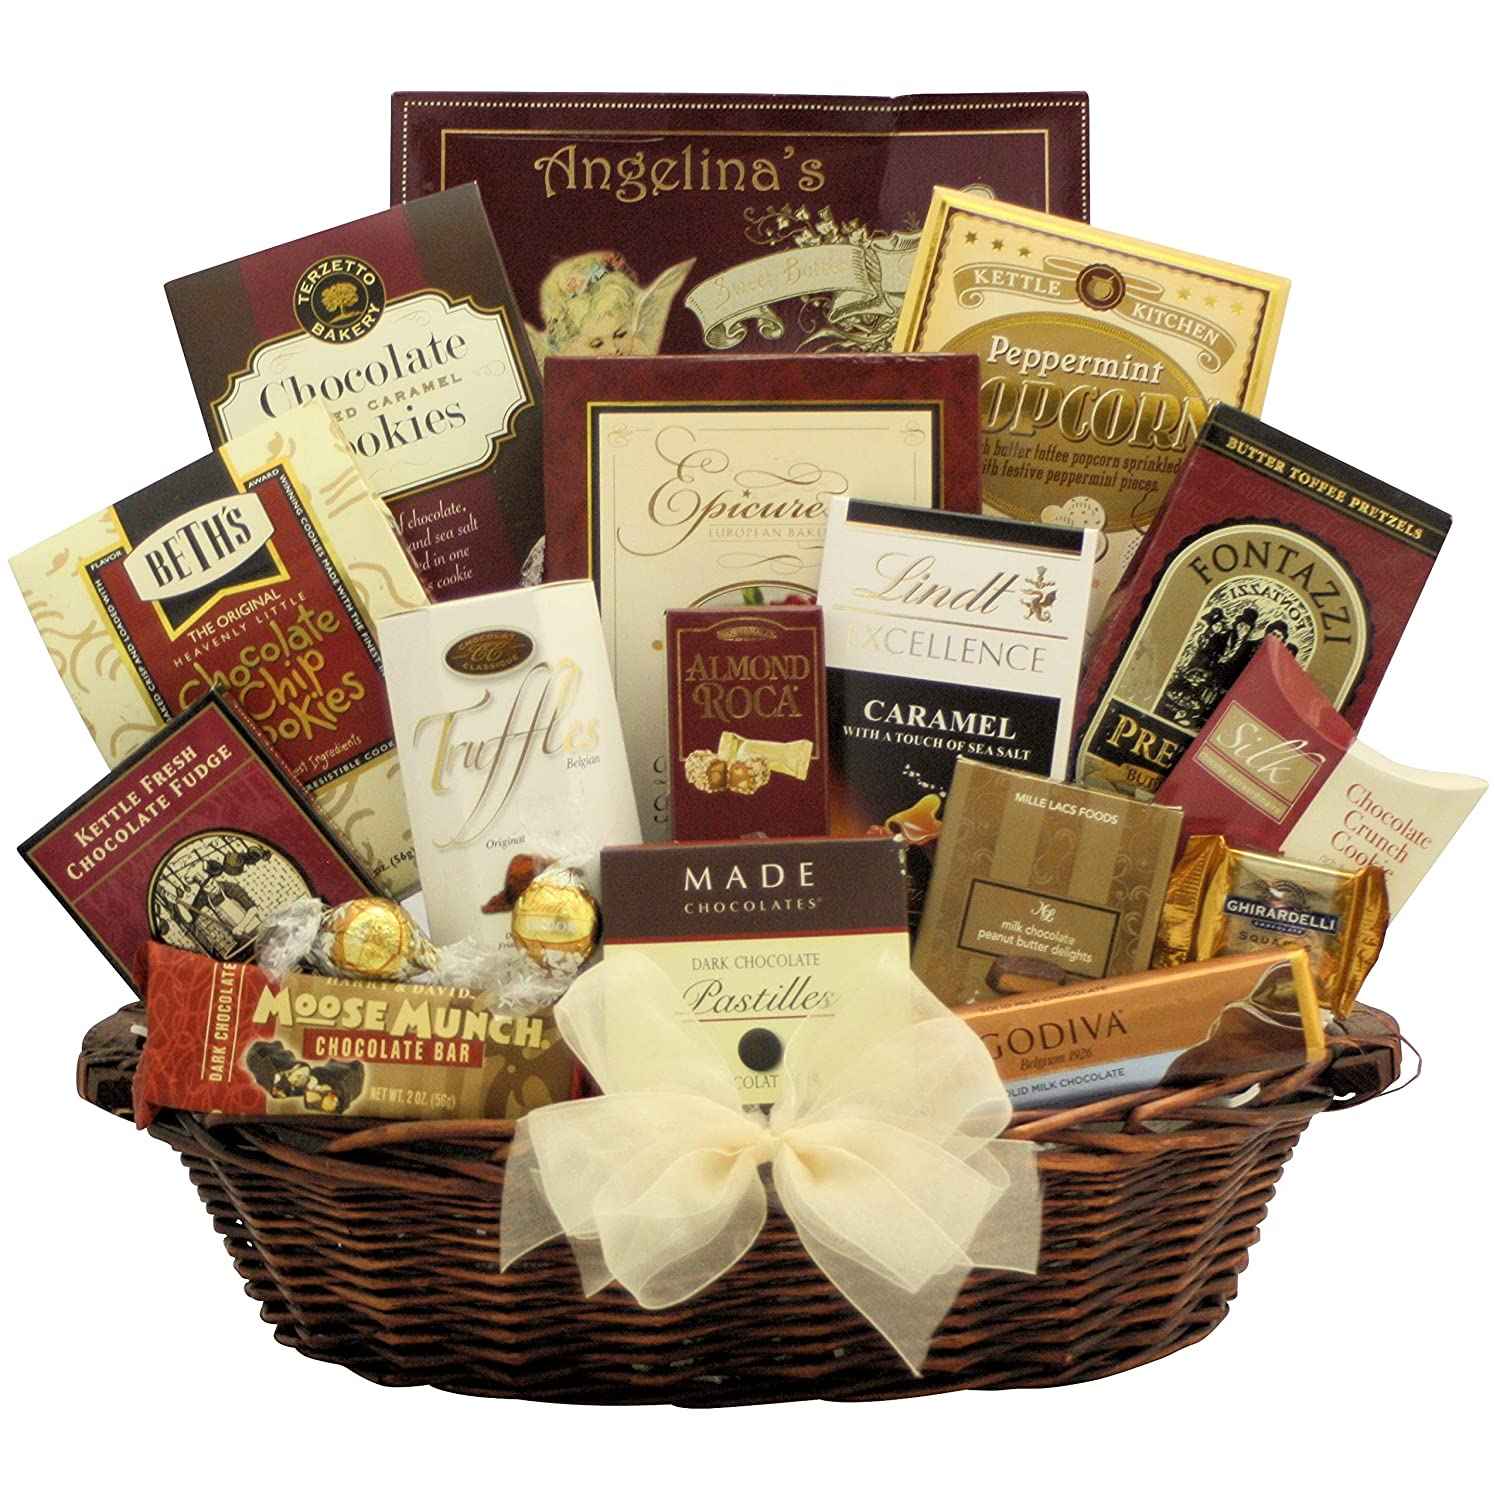 CDM product GreatArrivals Gift Baskets Peace & Prosperity Large Chocolate Holiday Christmas Gift Basket, 4.08 Kg big image